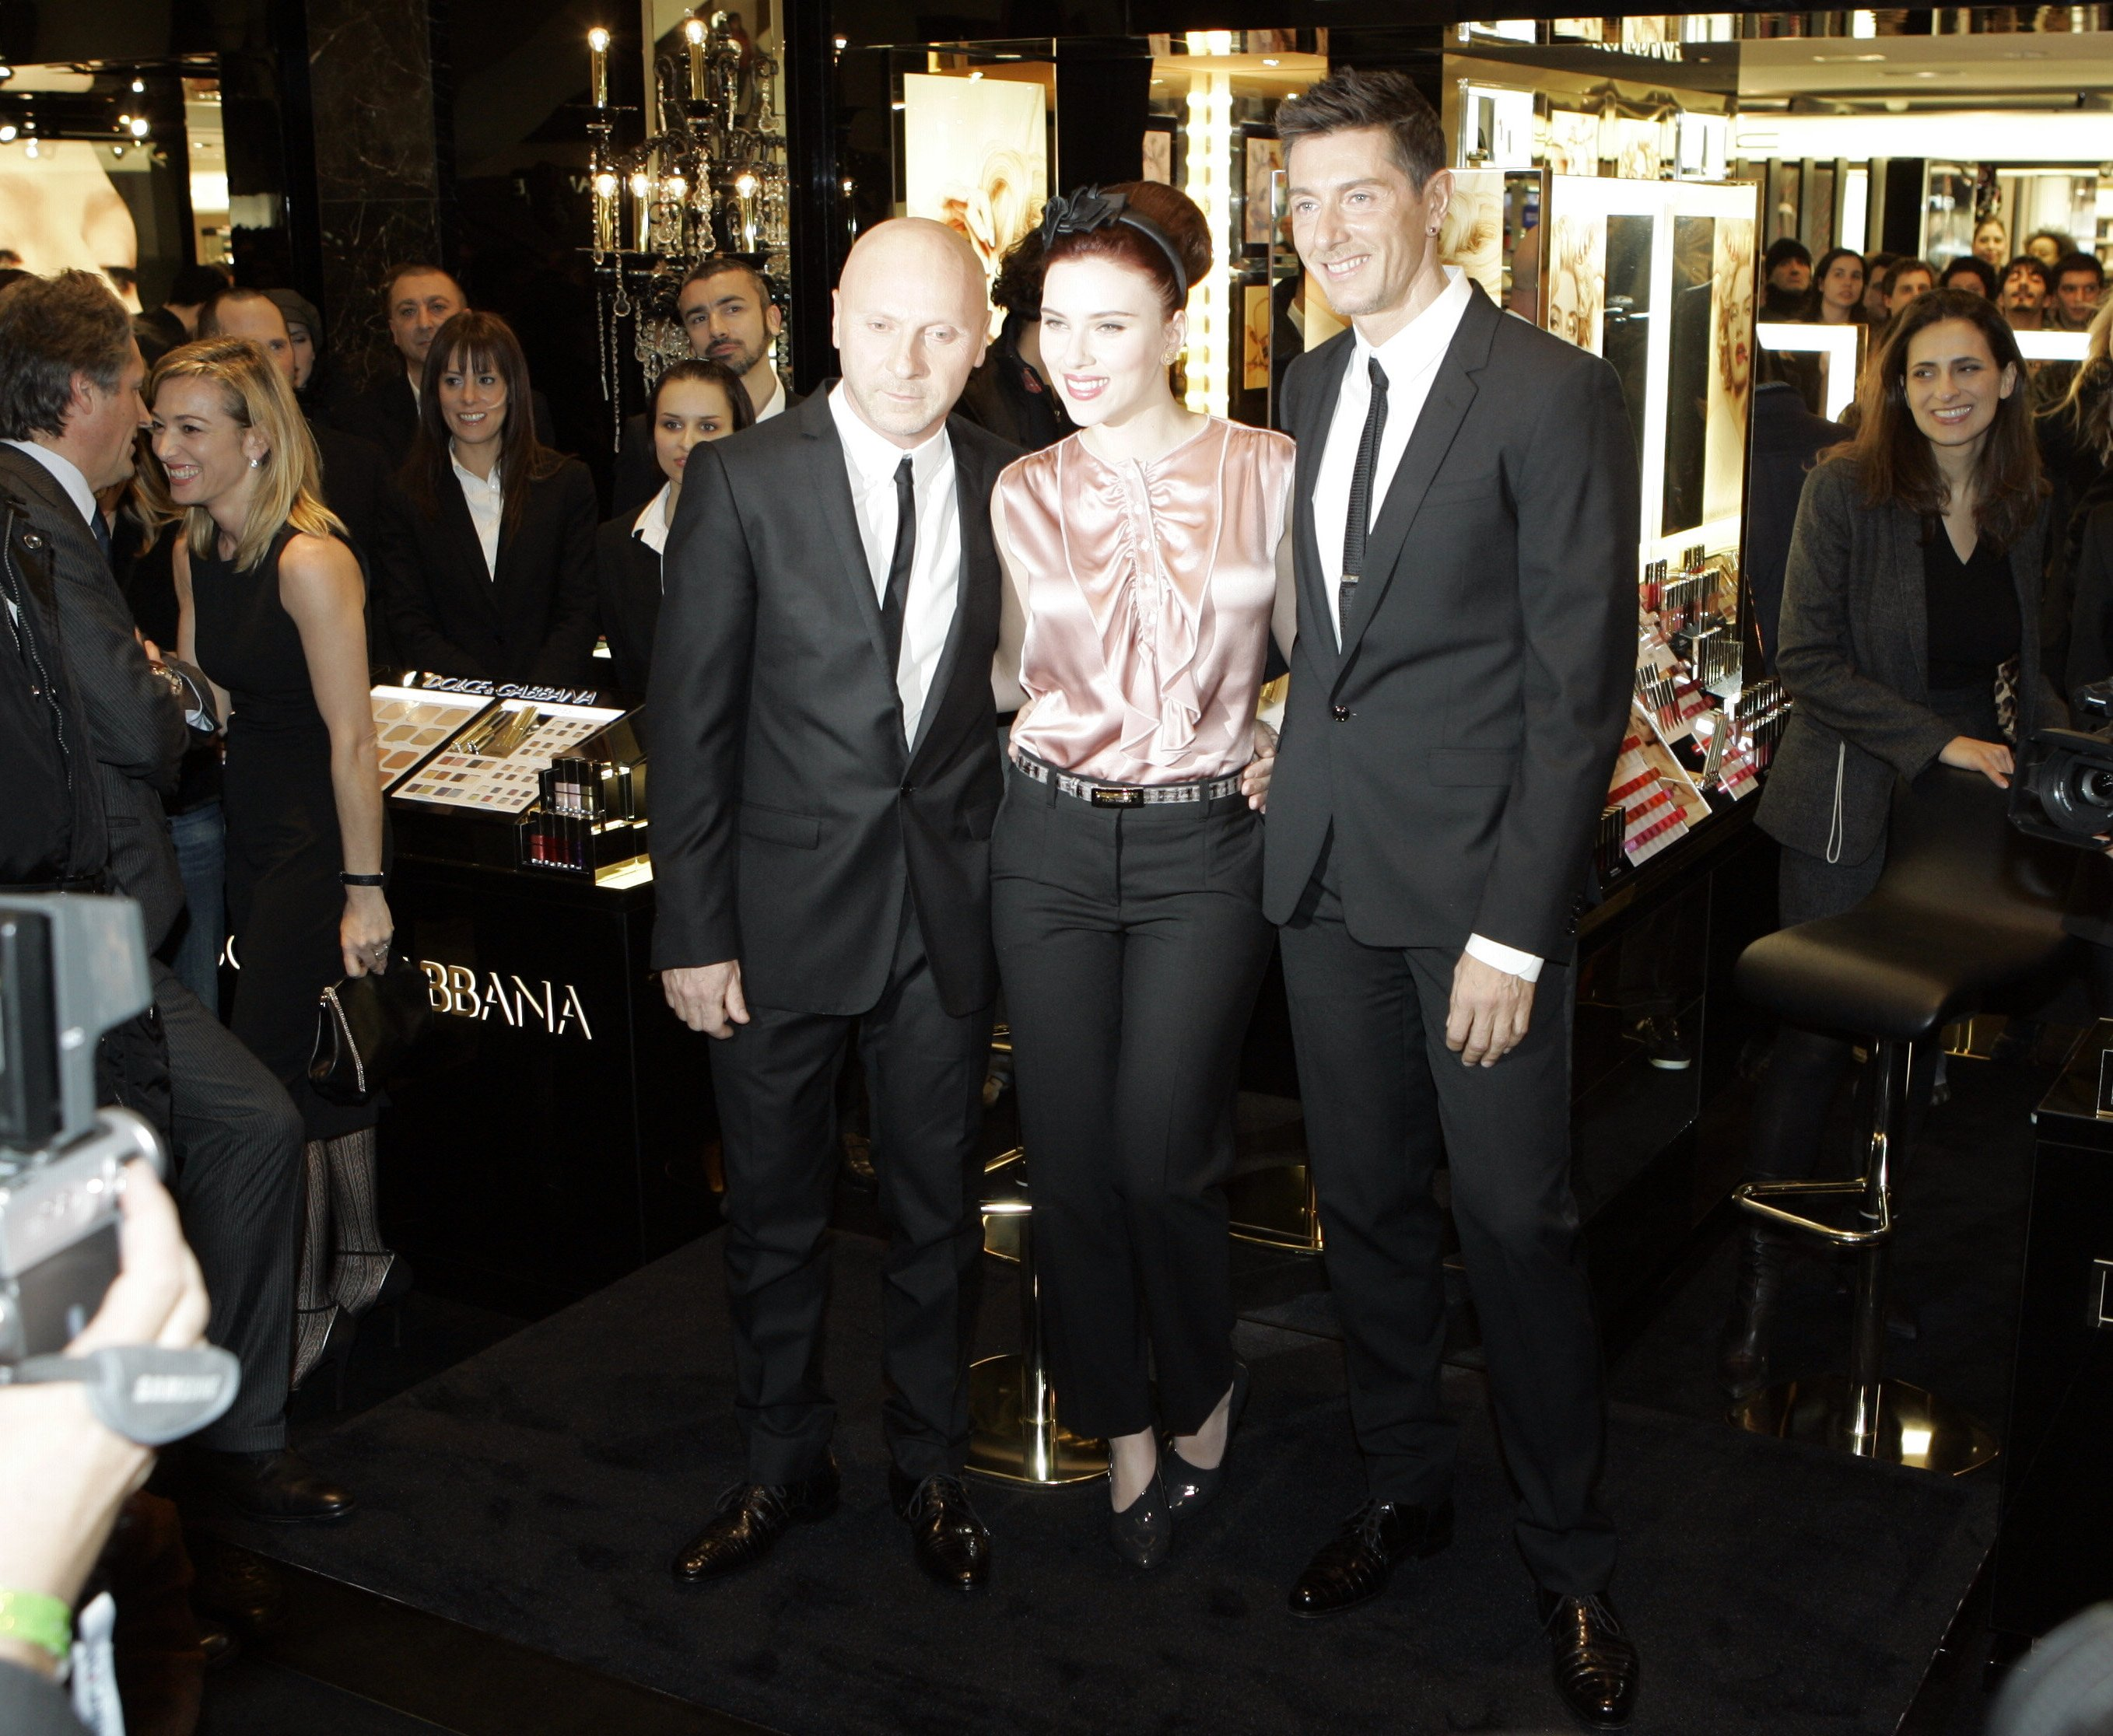 47907_Scarlett_Johansson_during_a_promotional_event_to_launch_Dolce_and_Gabbana-2_122_498lo